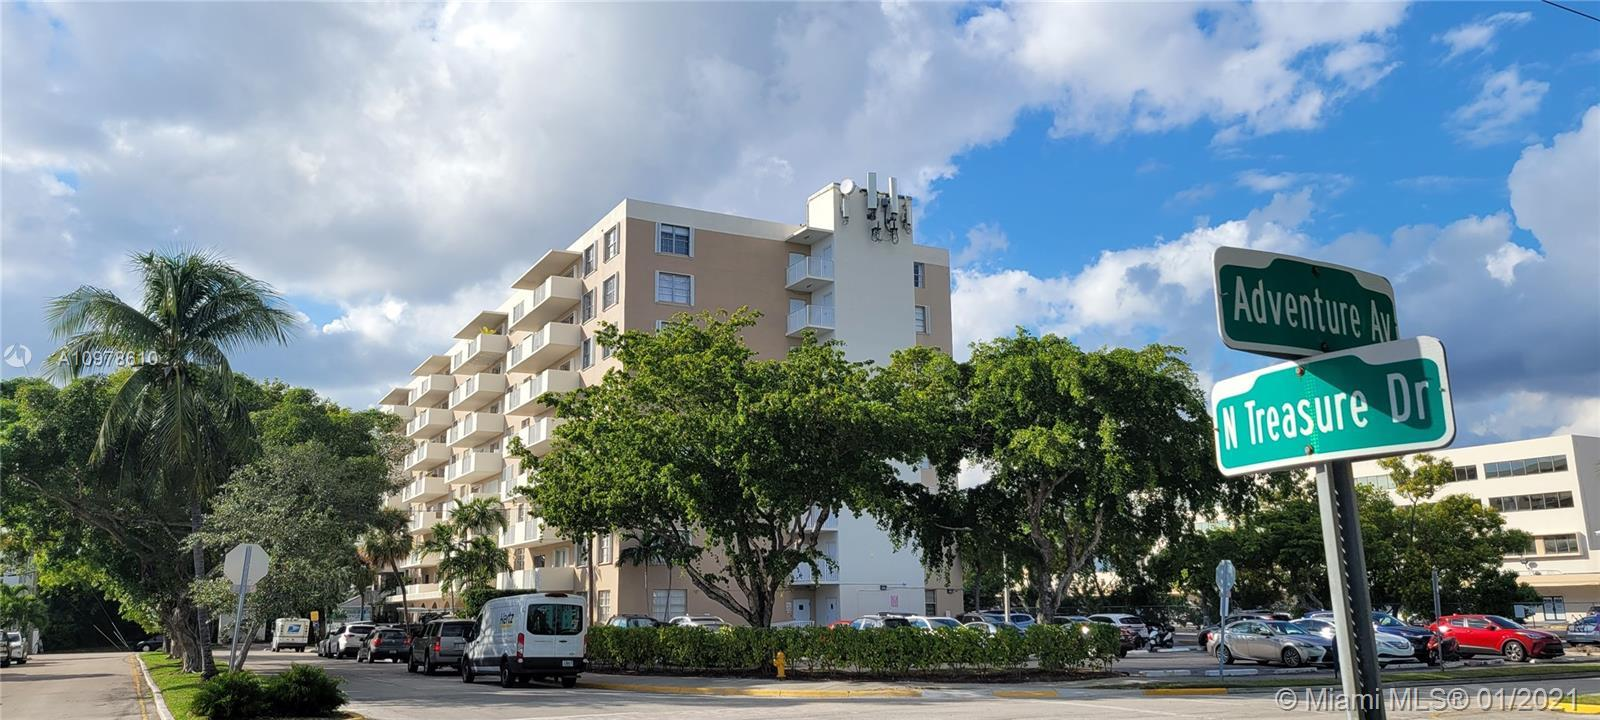 Welcome to Island Place at Treasure Island in North Bay Village.  Now is the opportunity to own the